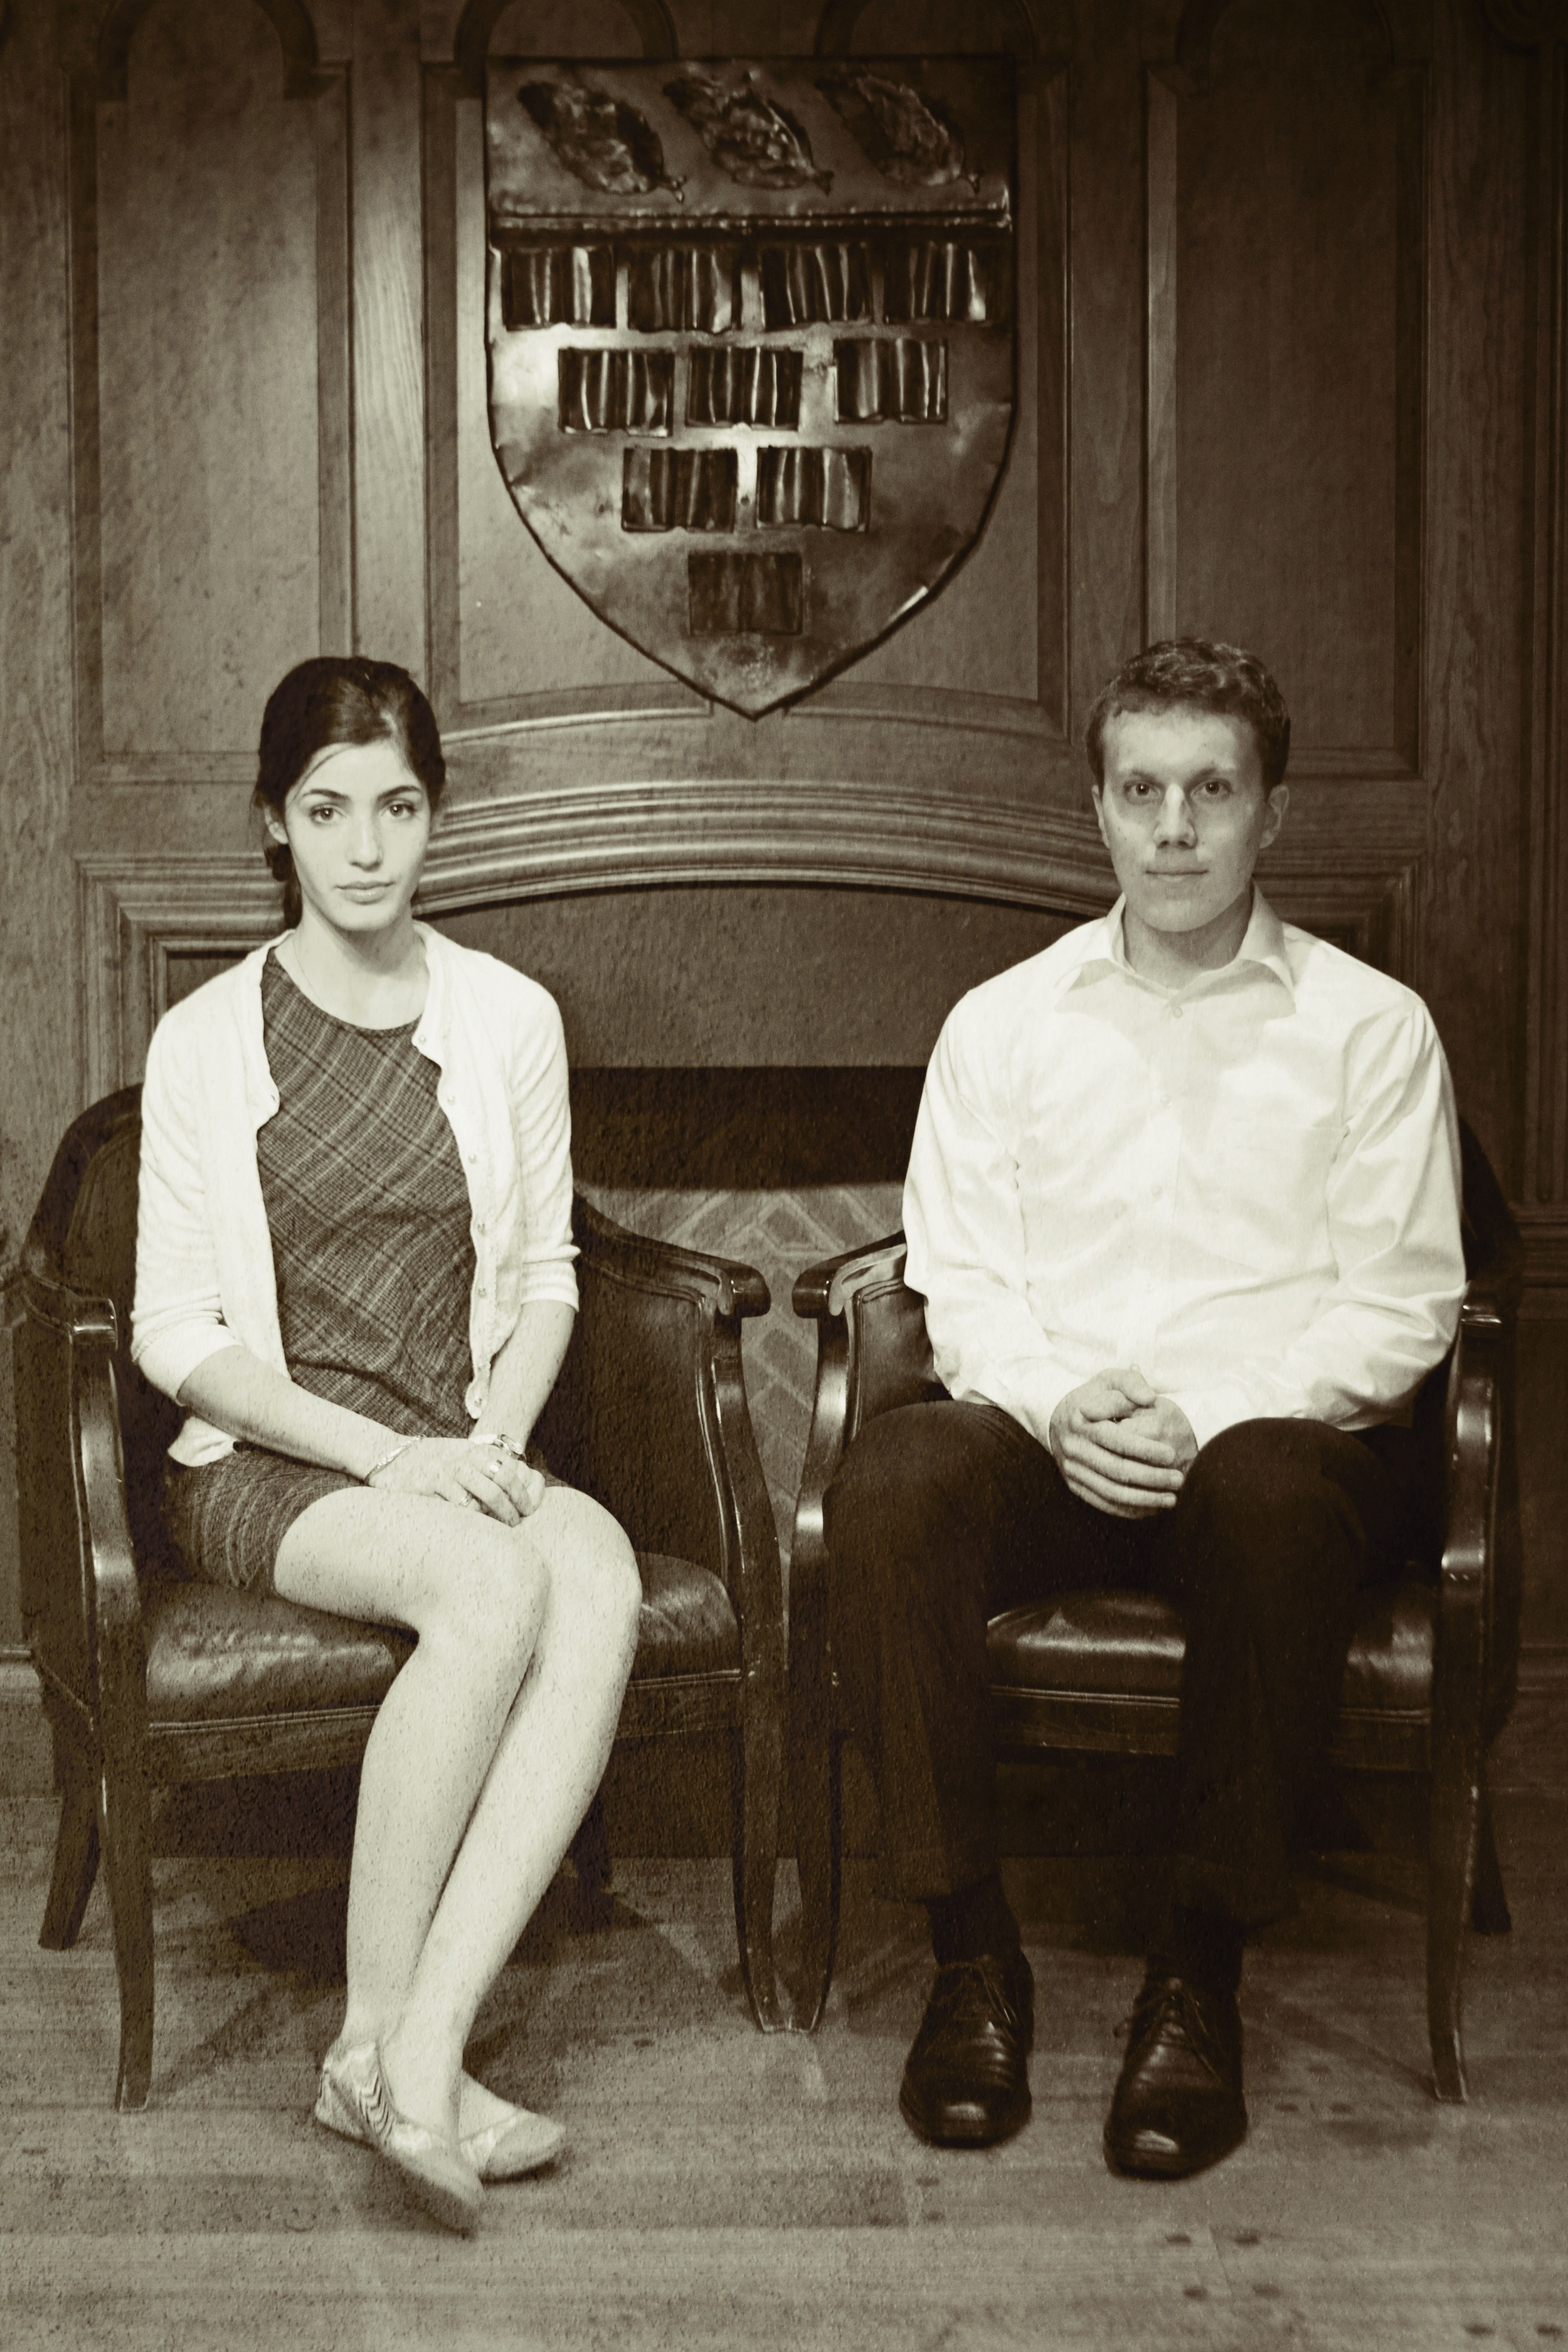 Franny ( Julie Shain ) and Zooey ( James Dieffenbach ).